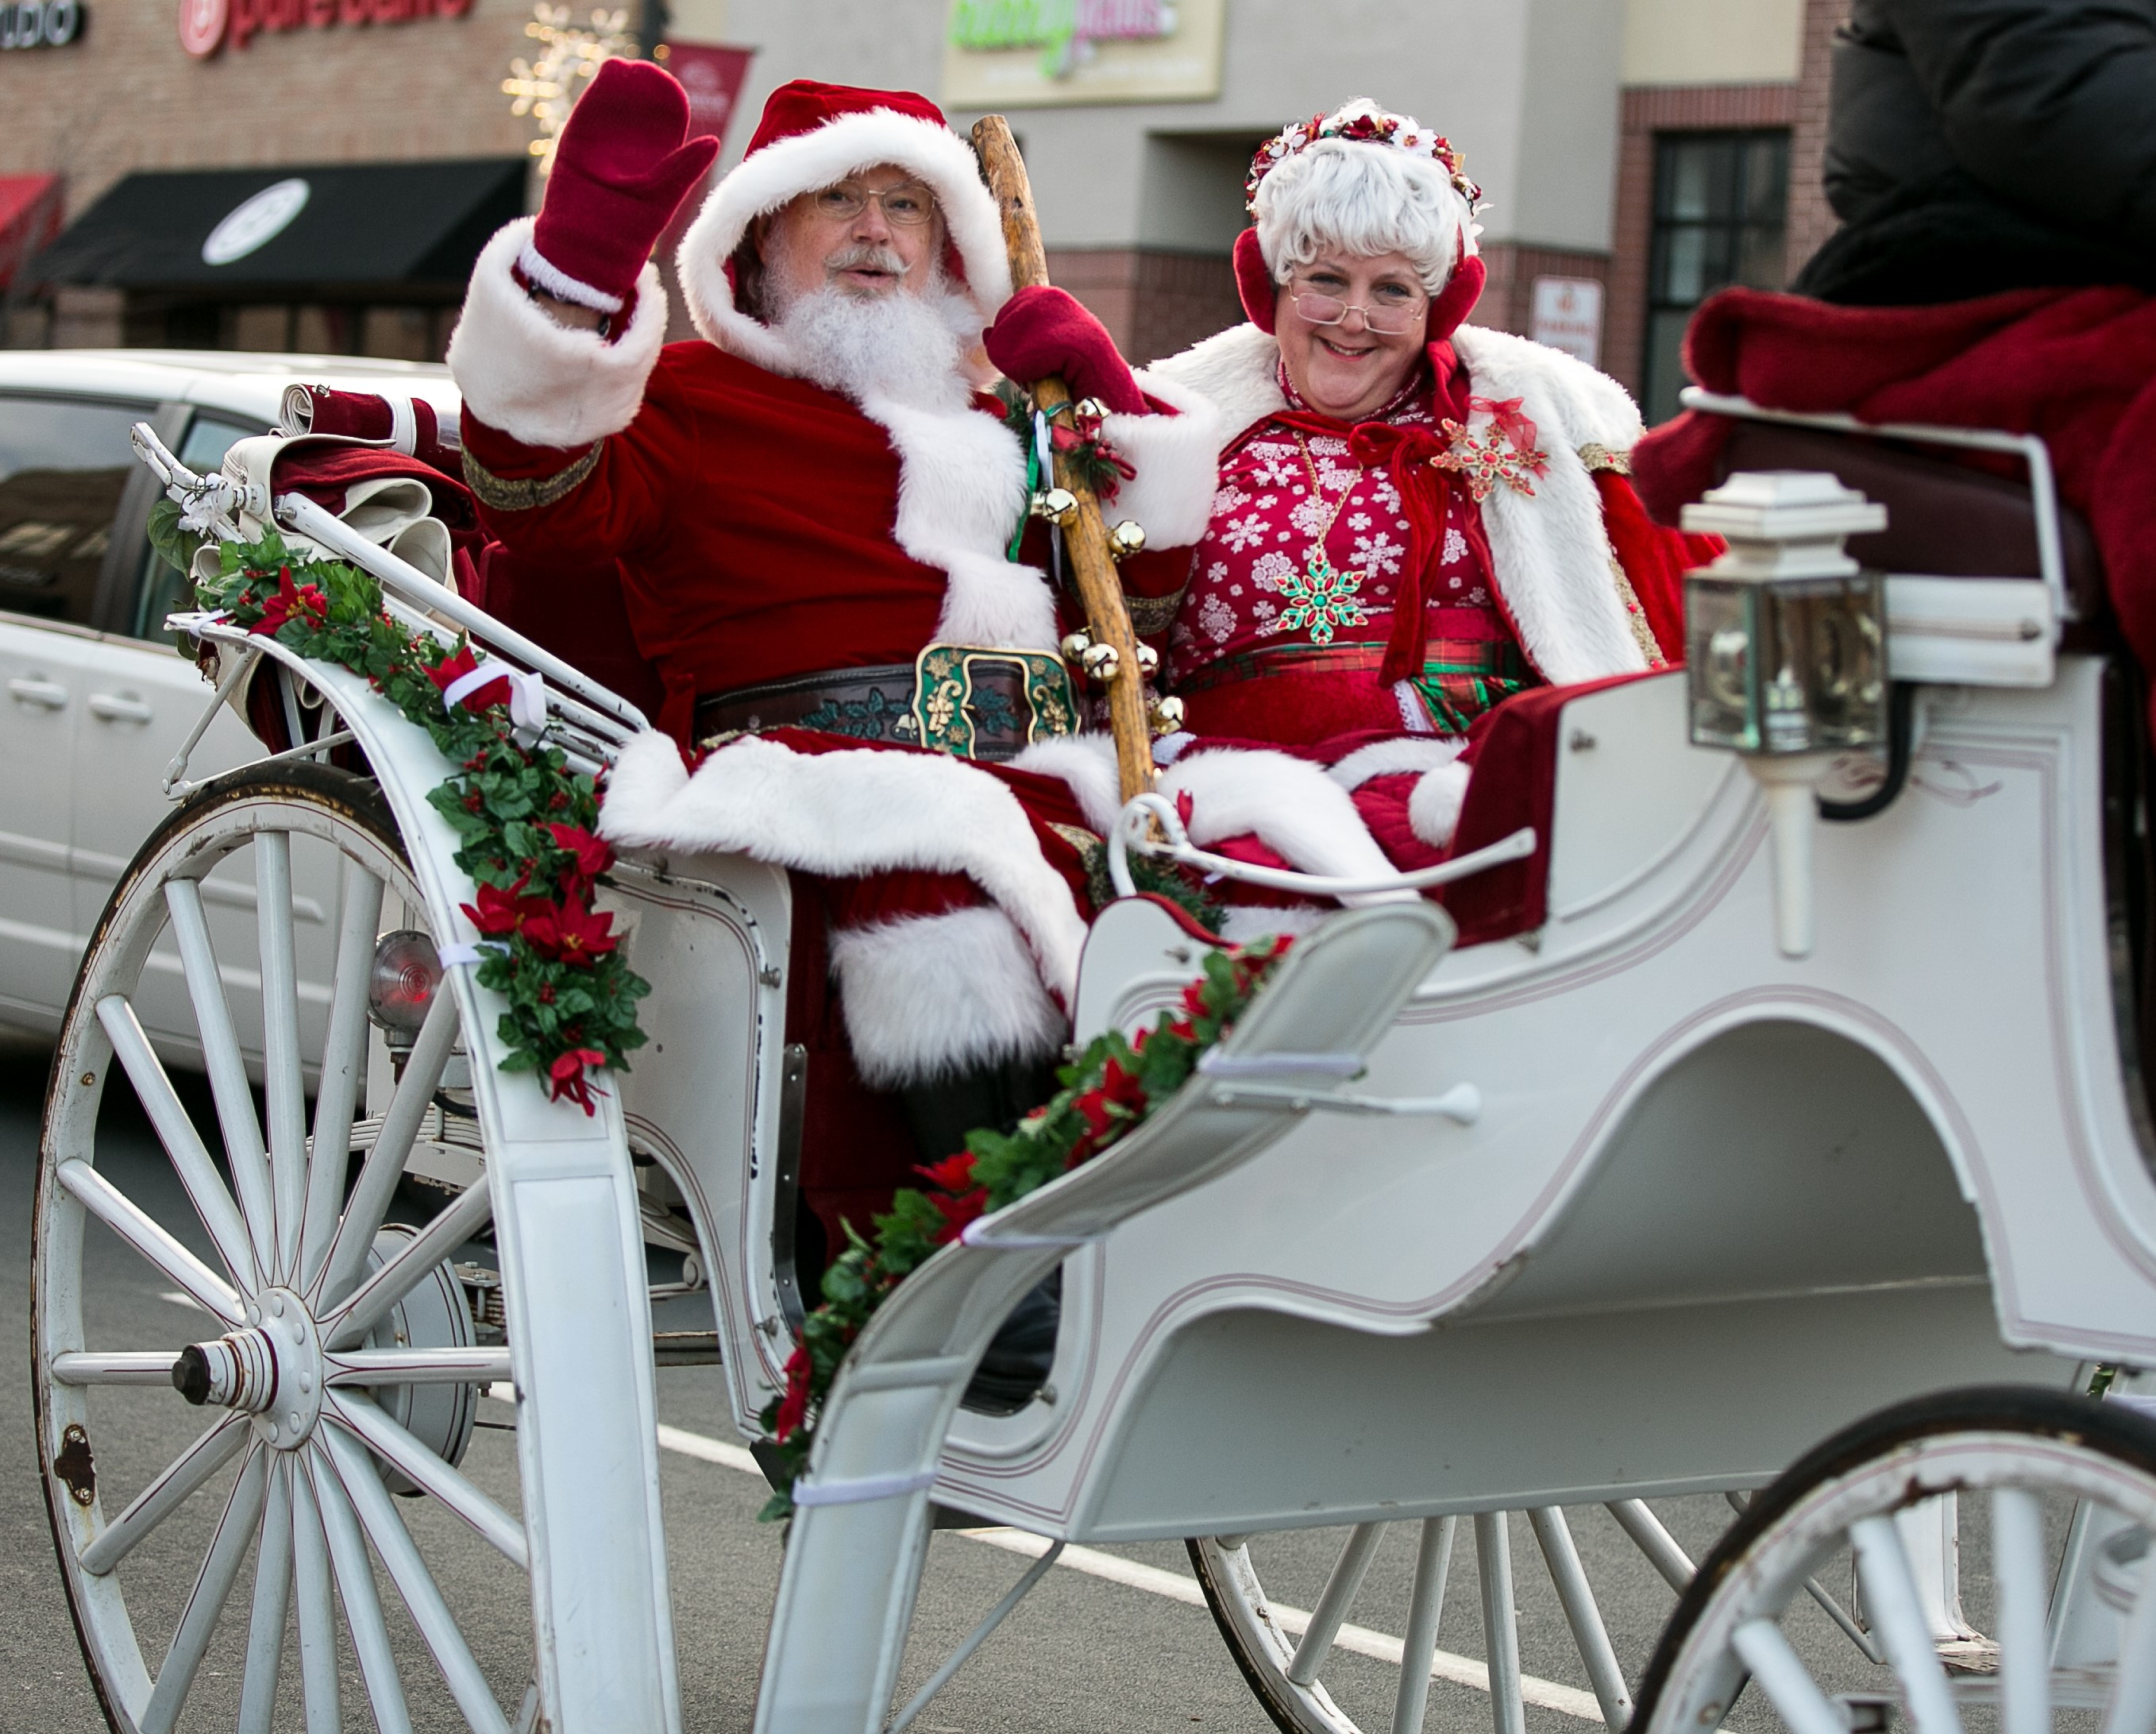 Mr. and Mrs. Claus waving to people